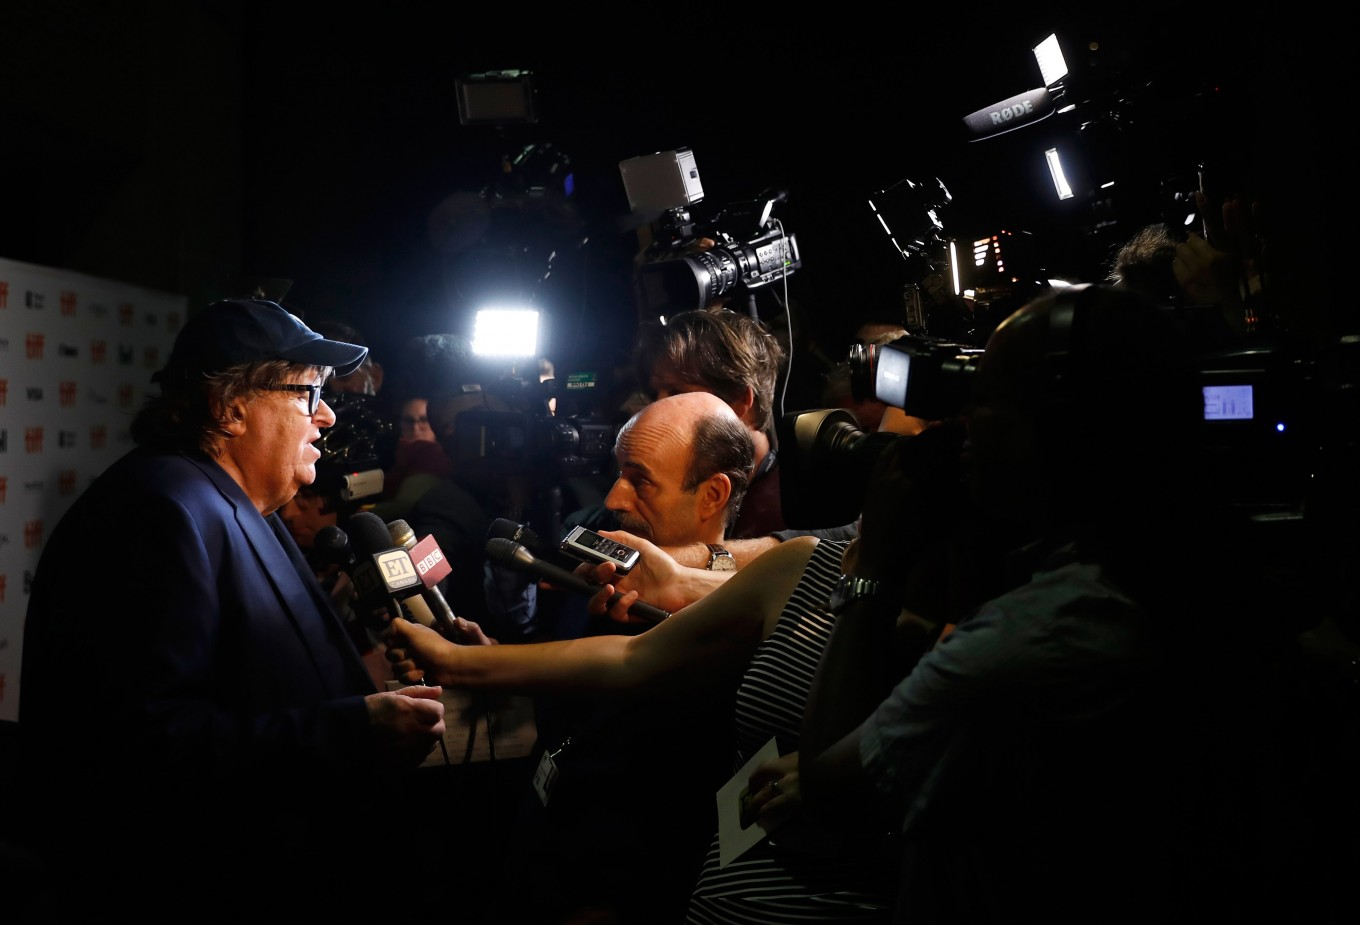 Michael Moore hopes his film is 'beginning of the end' for Trump